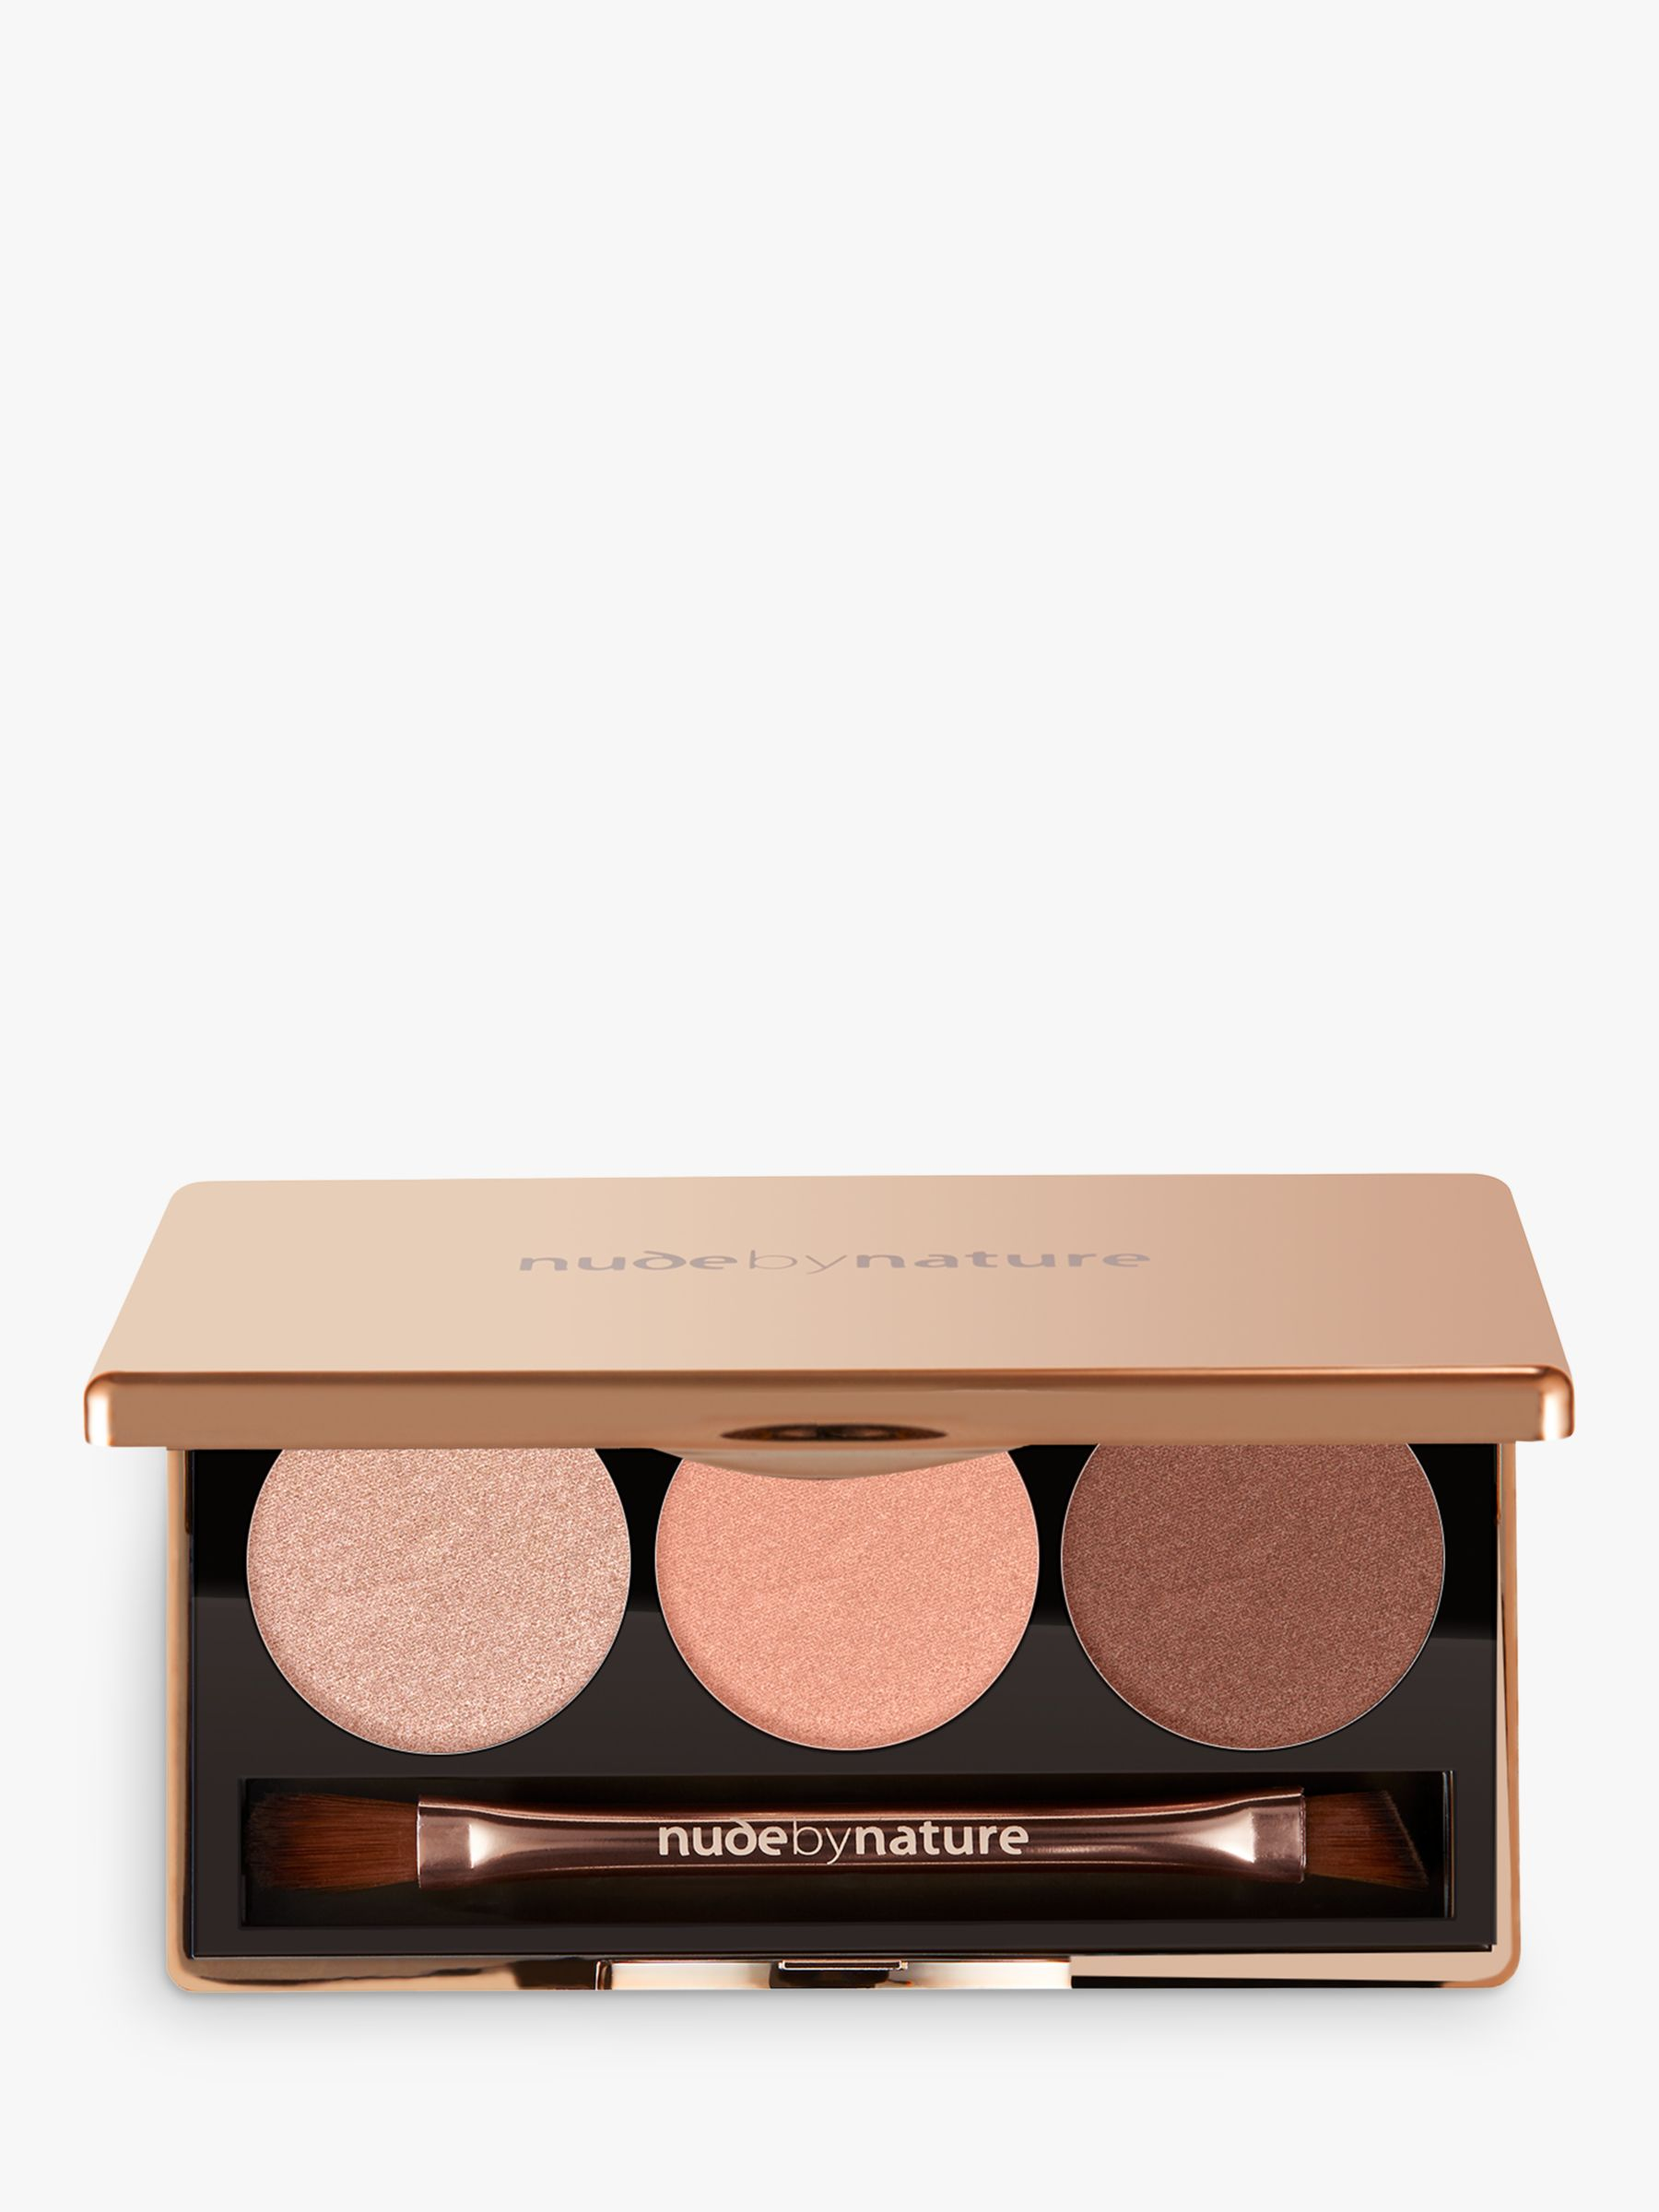 Nude by Nature Nude by Nature Natural Illusion Eyeshadow Trio, 03 Rose